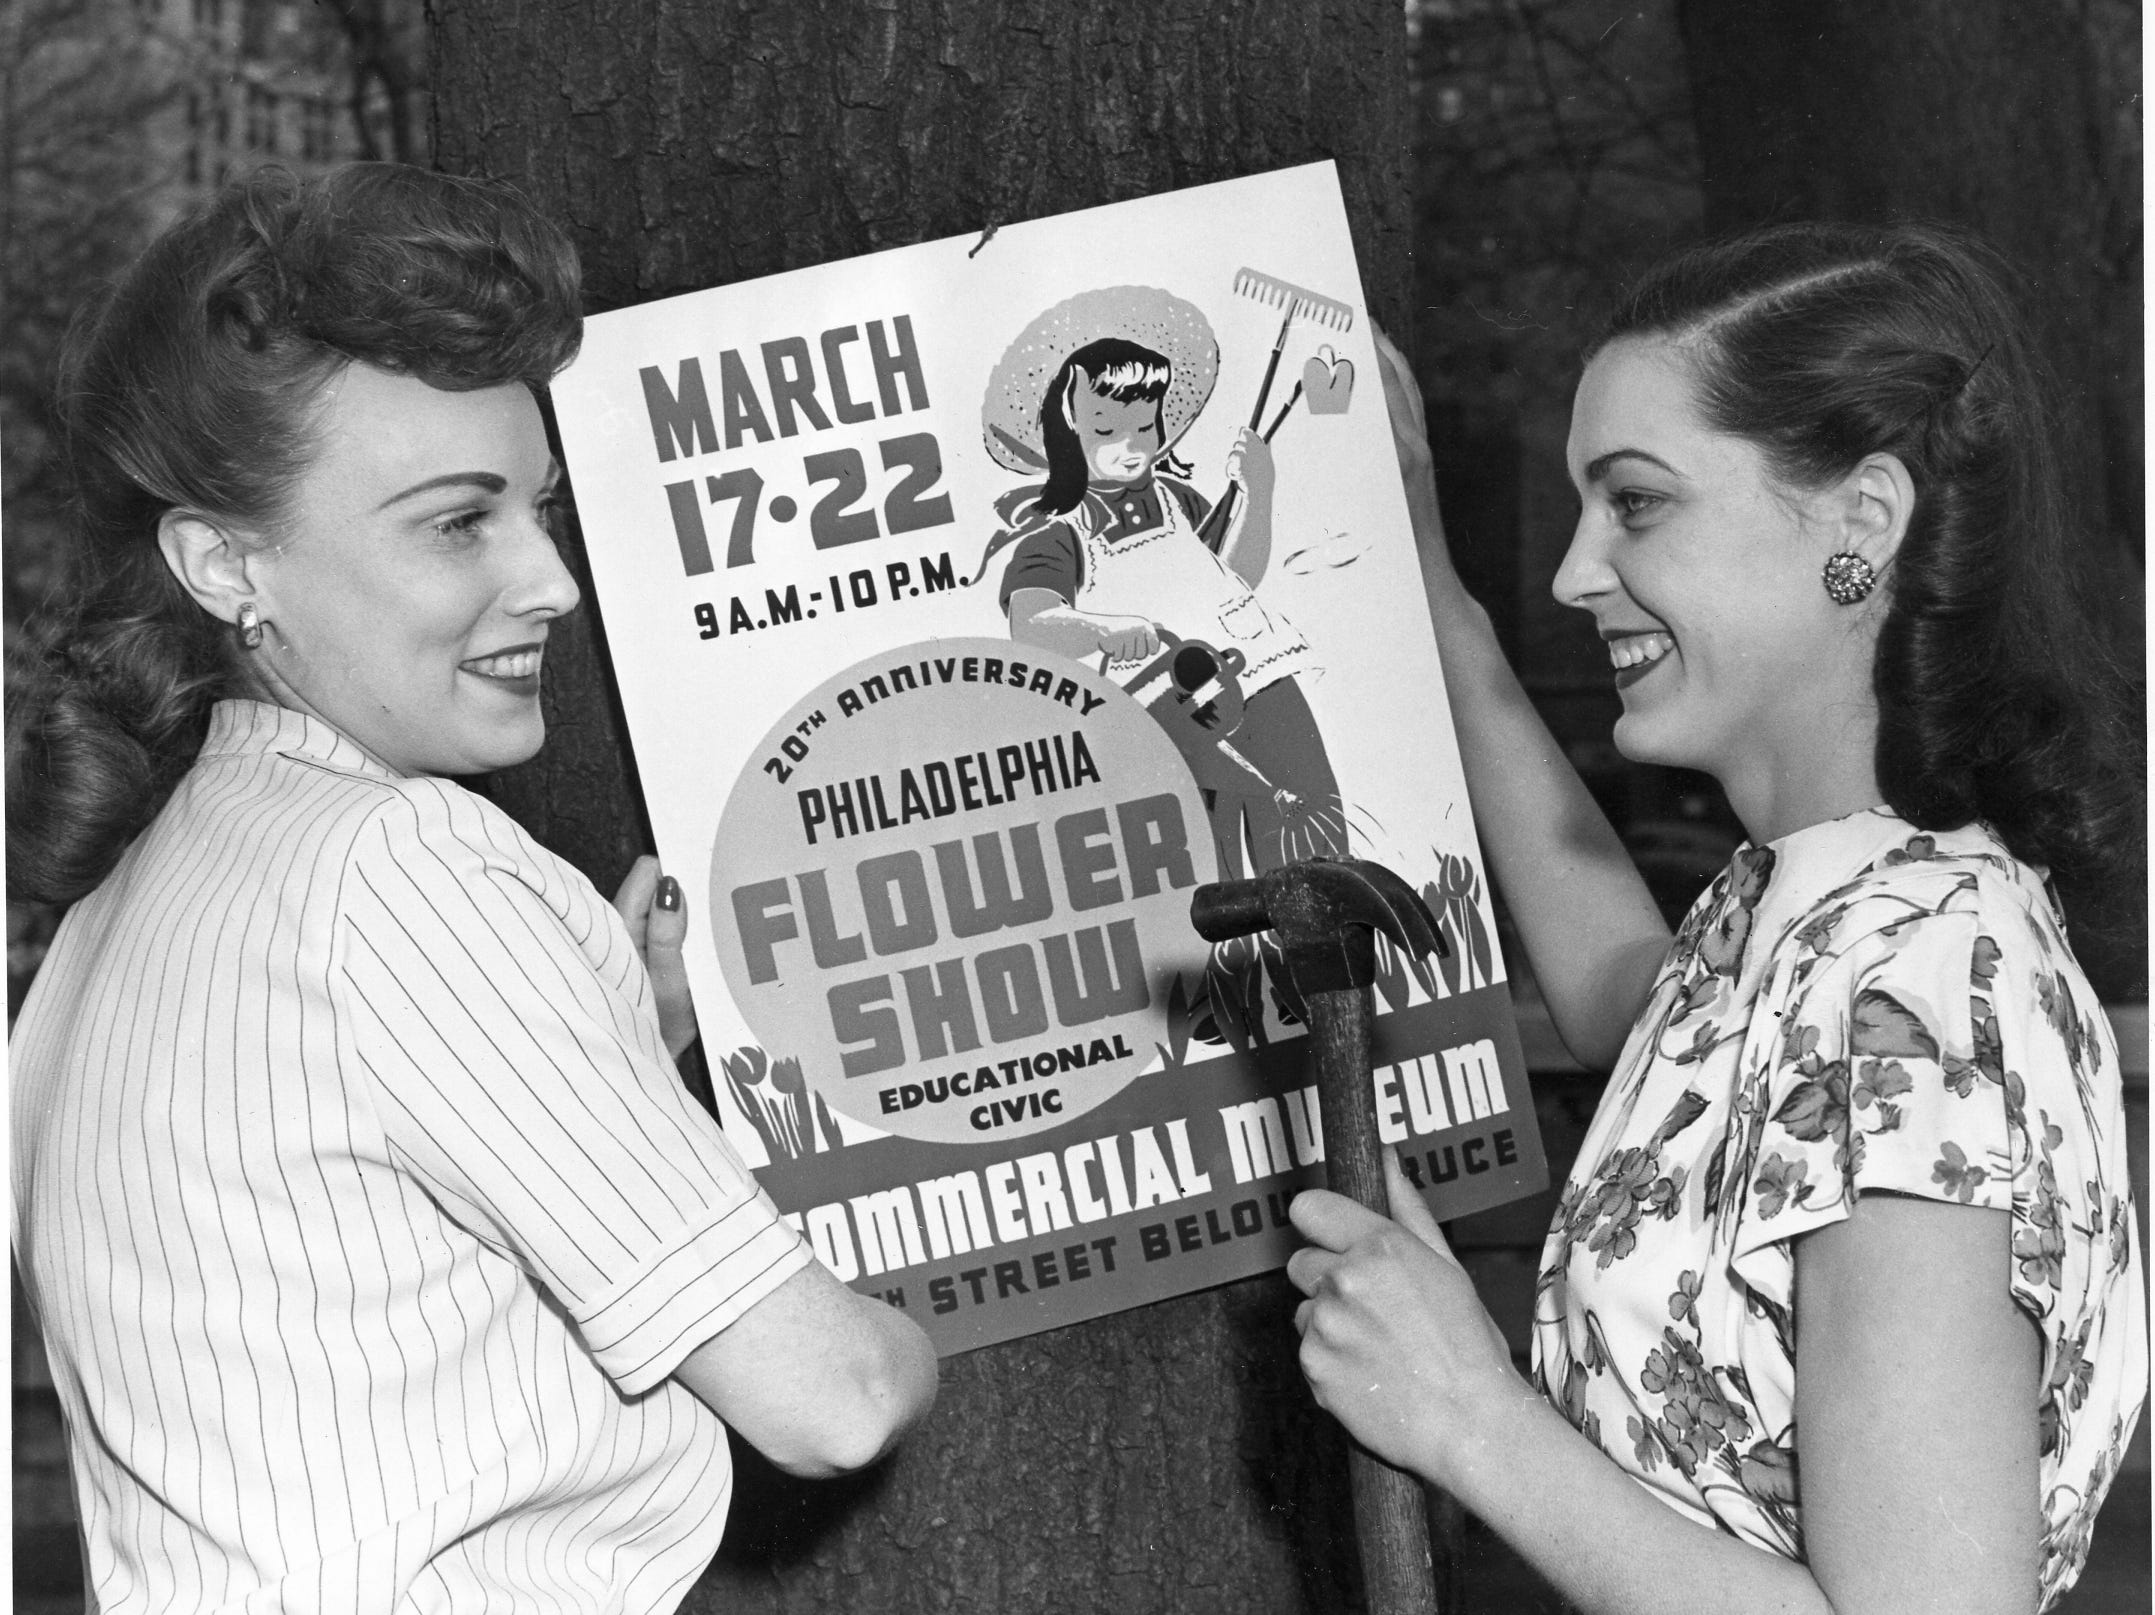 Flower show presenters hang up a poster promoting the 1947 Philadelphia Flower Show.